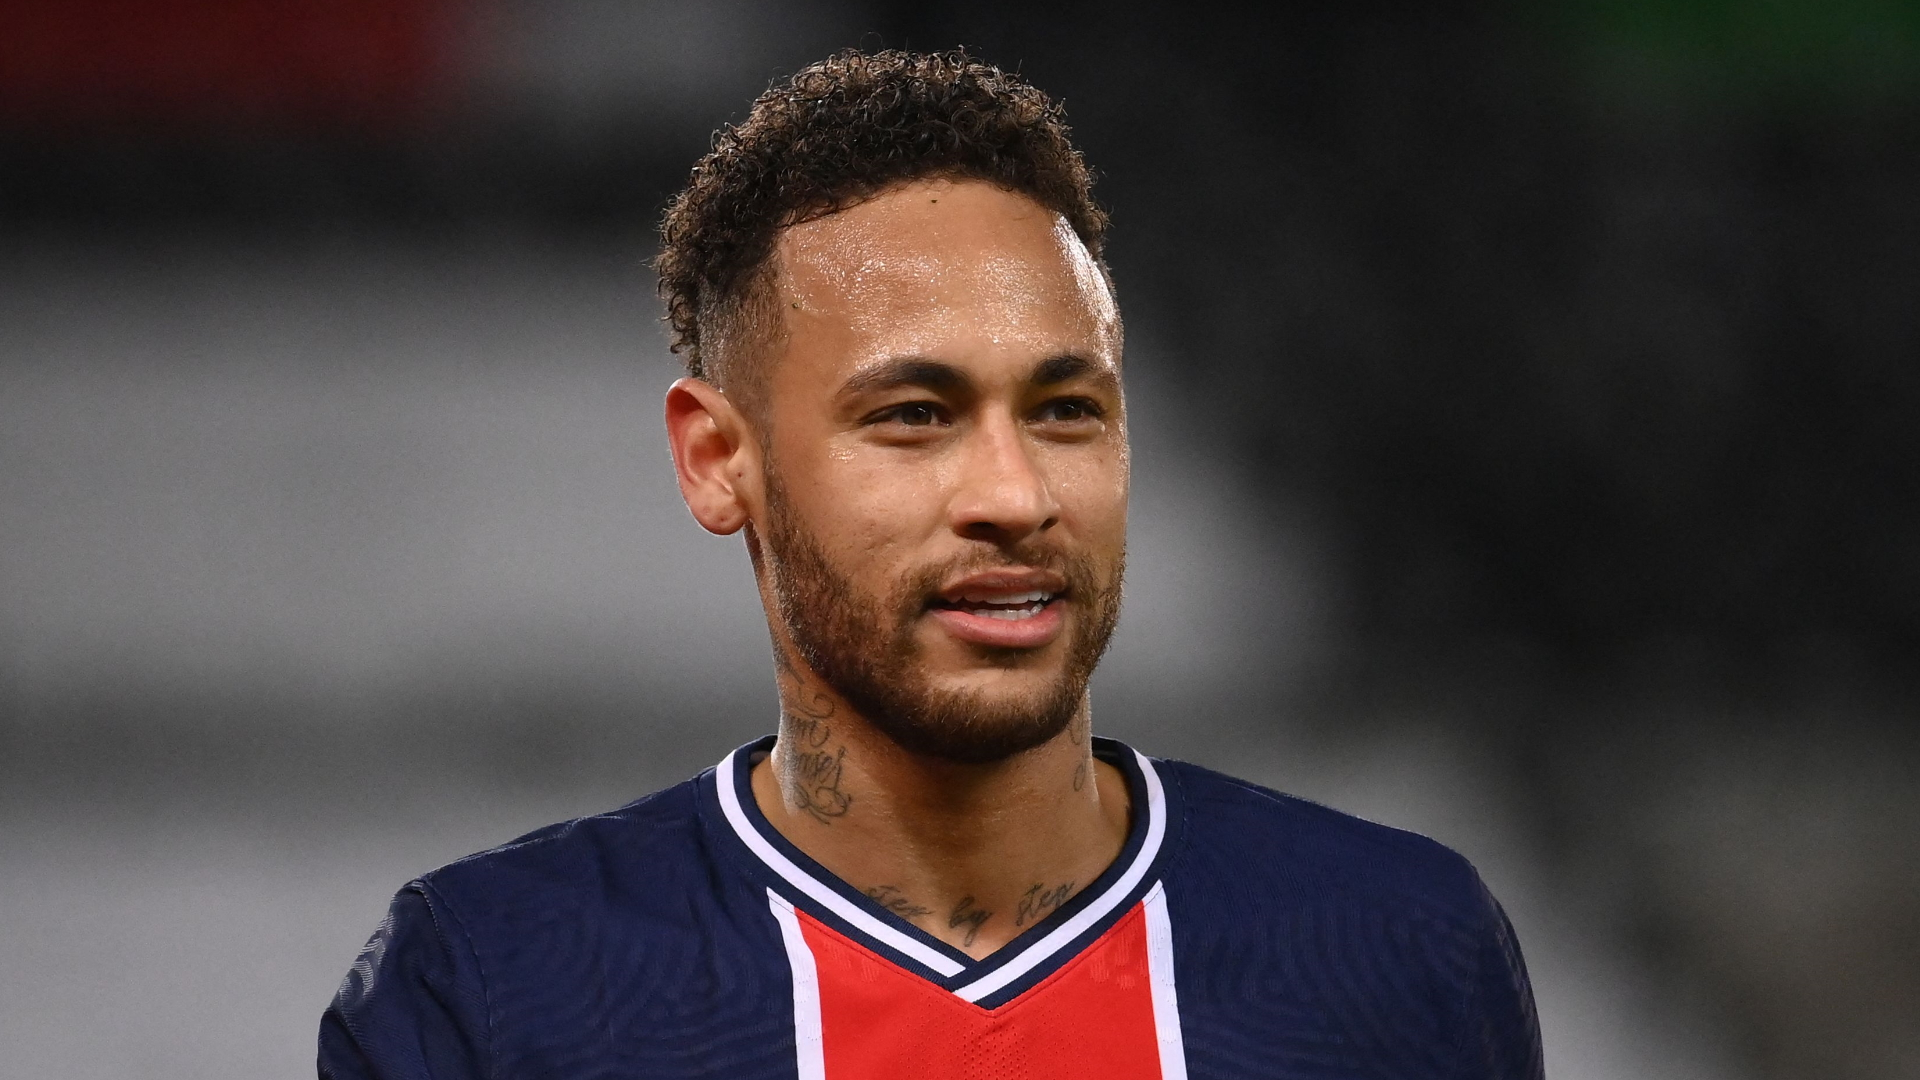 PSG star Neymar wants to be professional poker player when he retires from football